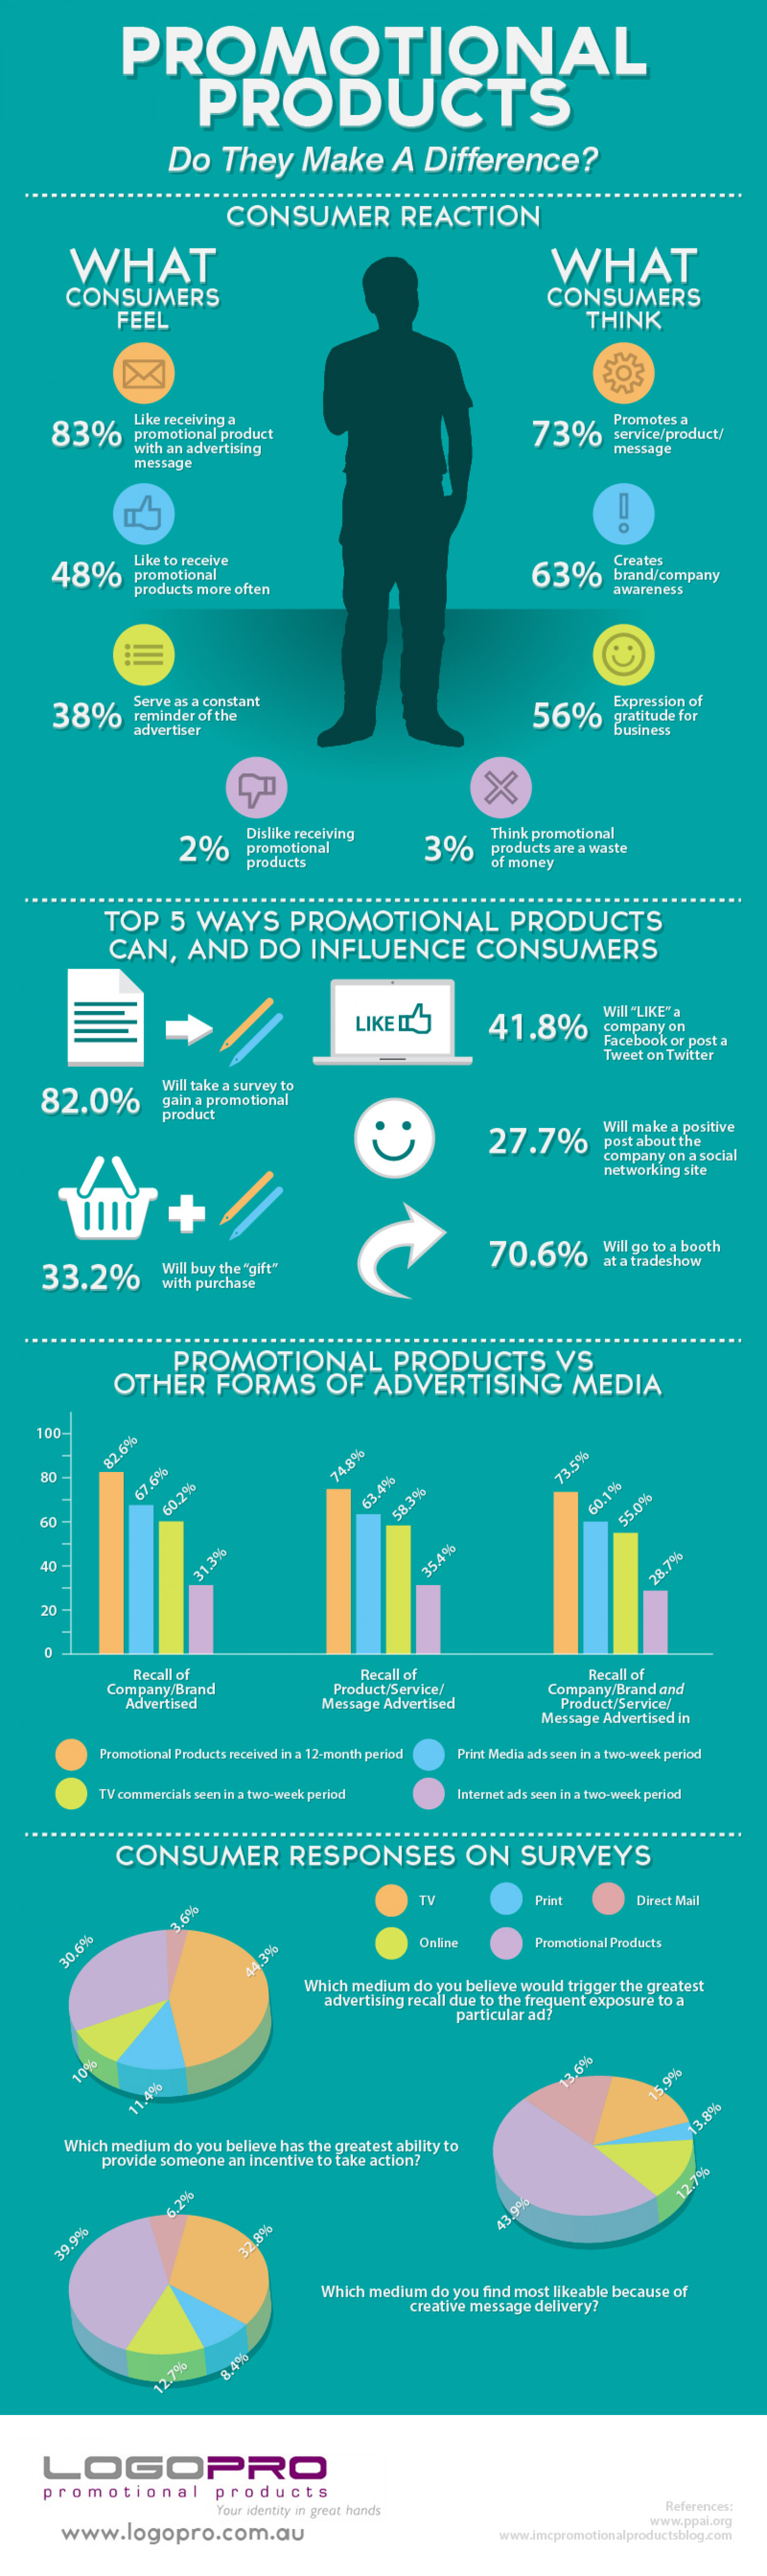 Promotional Products: Do They Make A Difference? Infographic